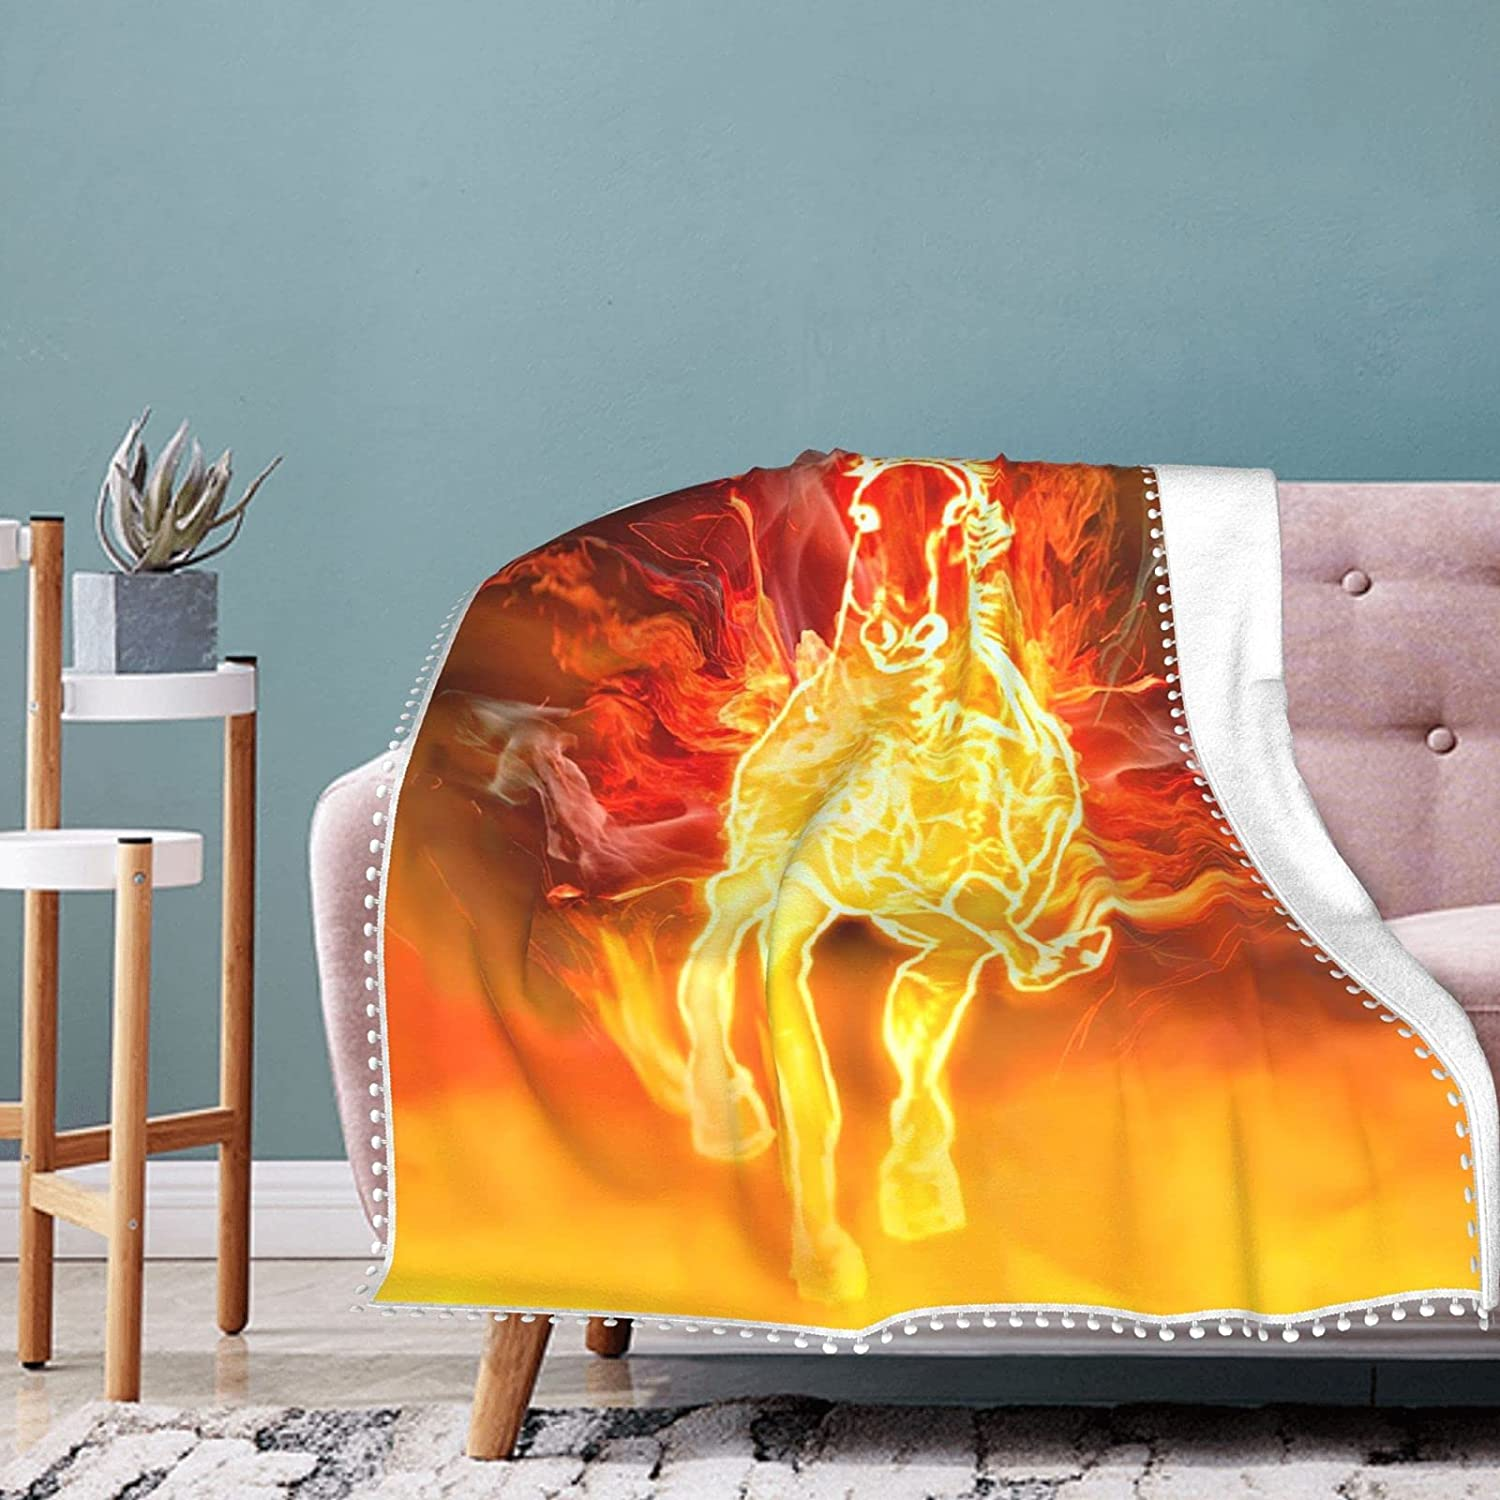 Red Flame Horse Fleece Blanket with Summer Fringe Air Cheap bargain Pompom Co Max 49% OFF